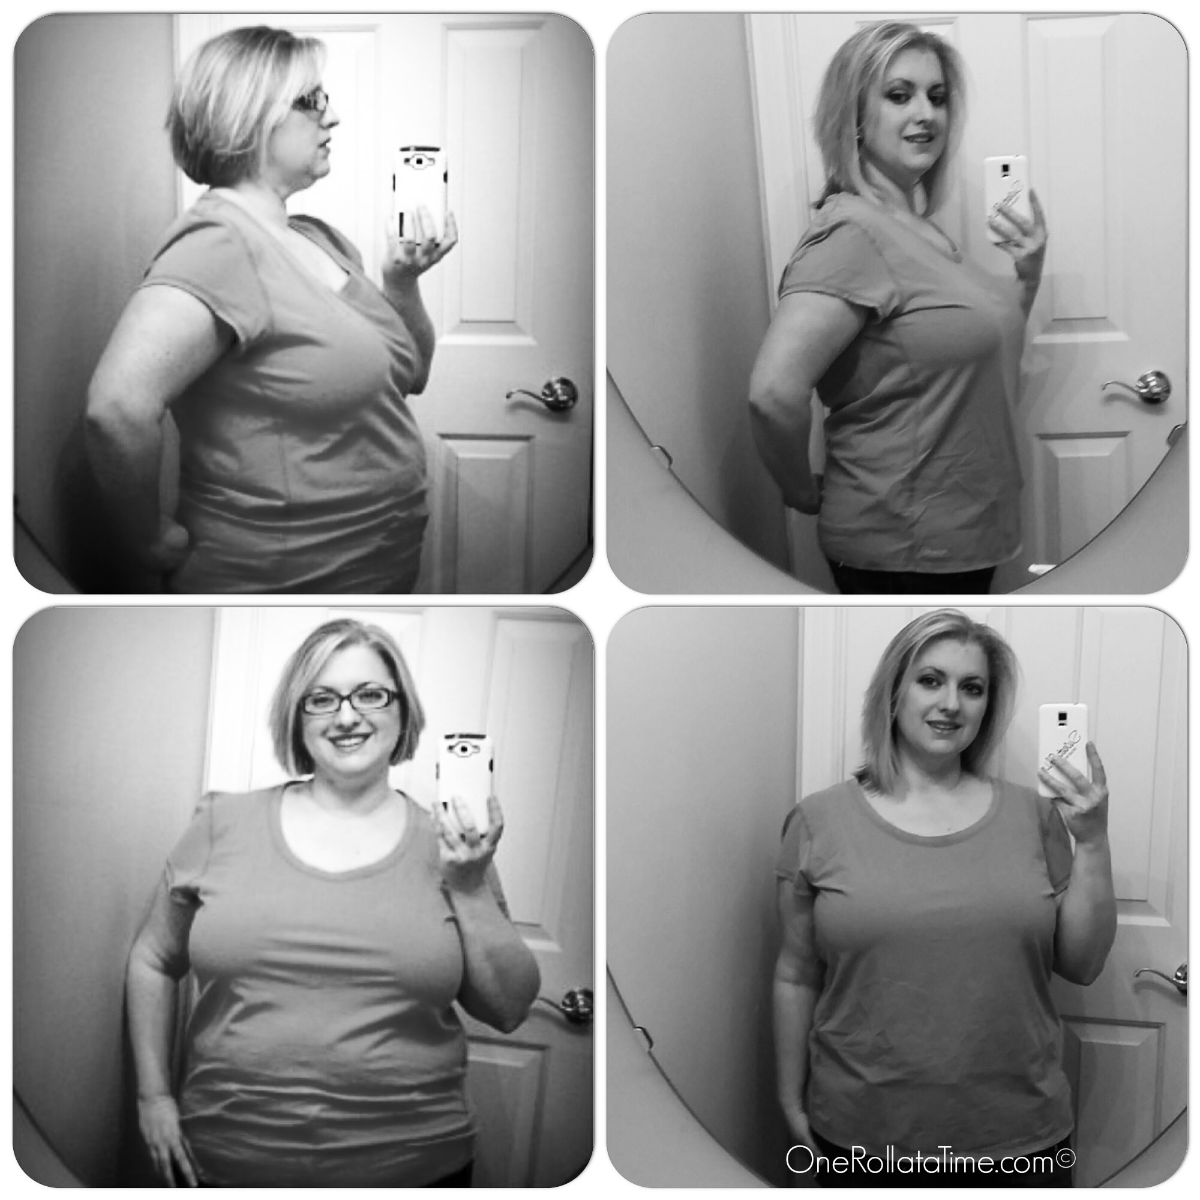 Down 31.2 Pounds & Counting - On My Way